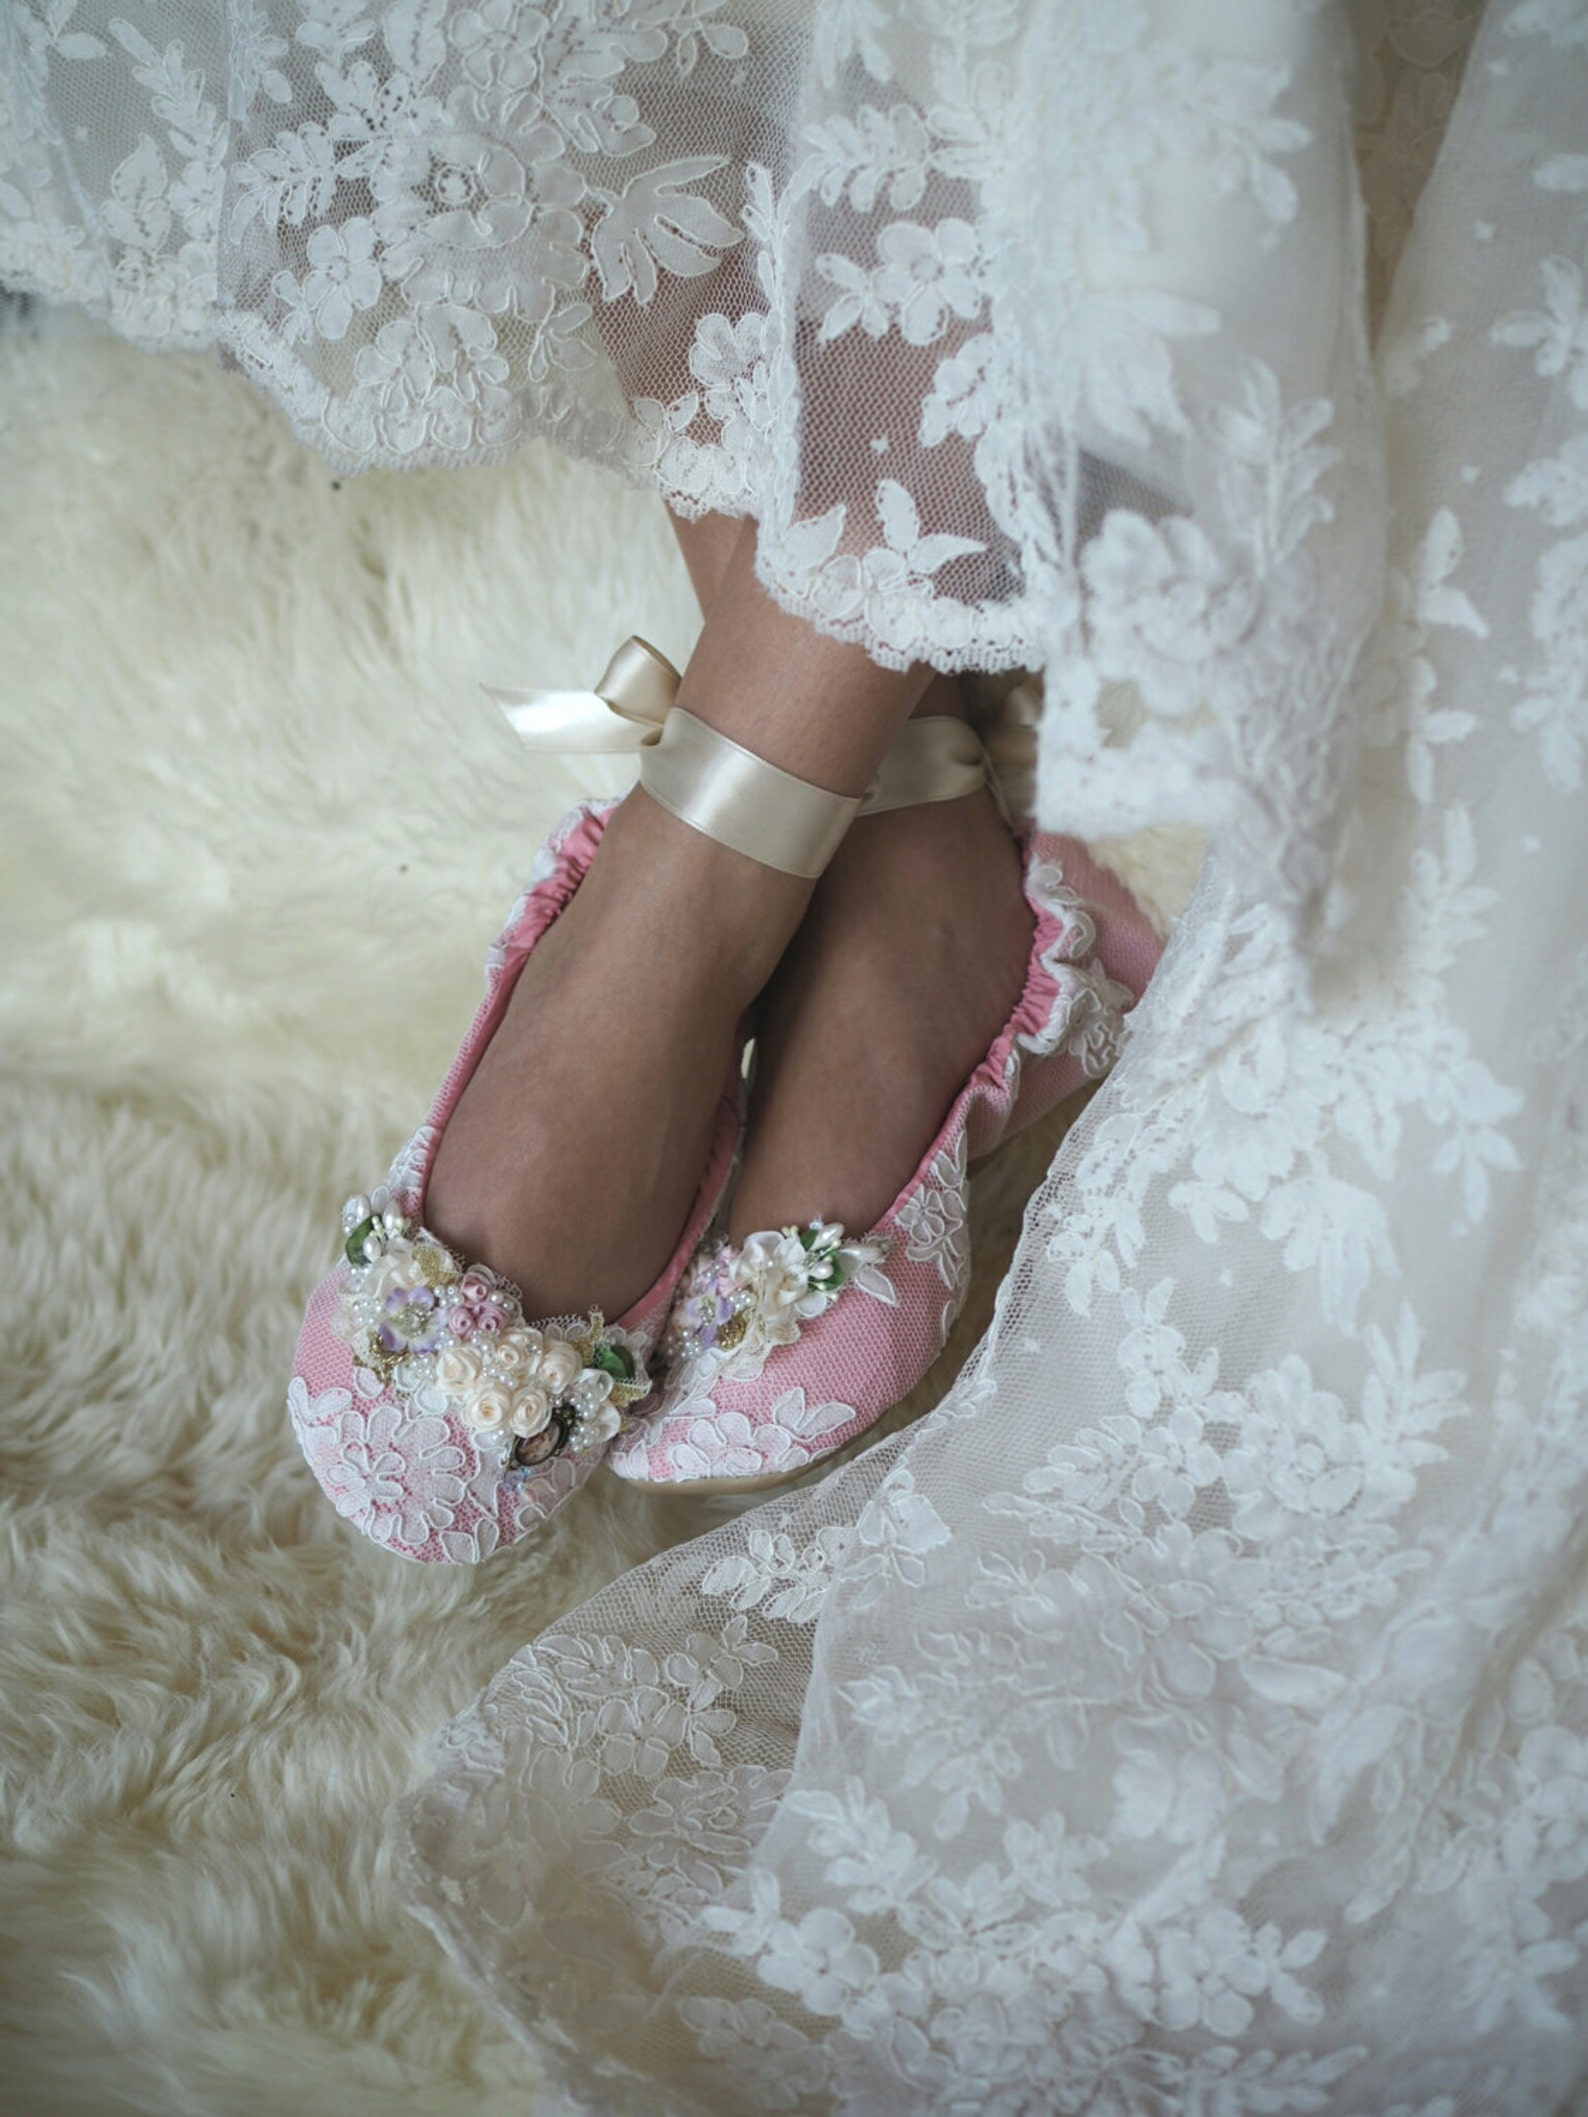 reinessance princess ballerina bridal slipper, rose ballet style bridal shoe, customized wedding shoe, elegant bridal ballet sli